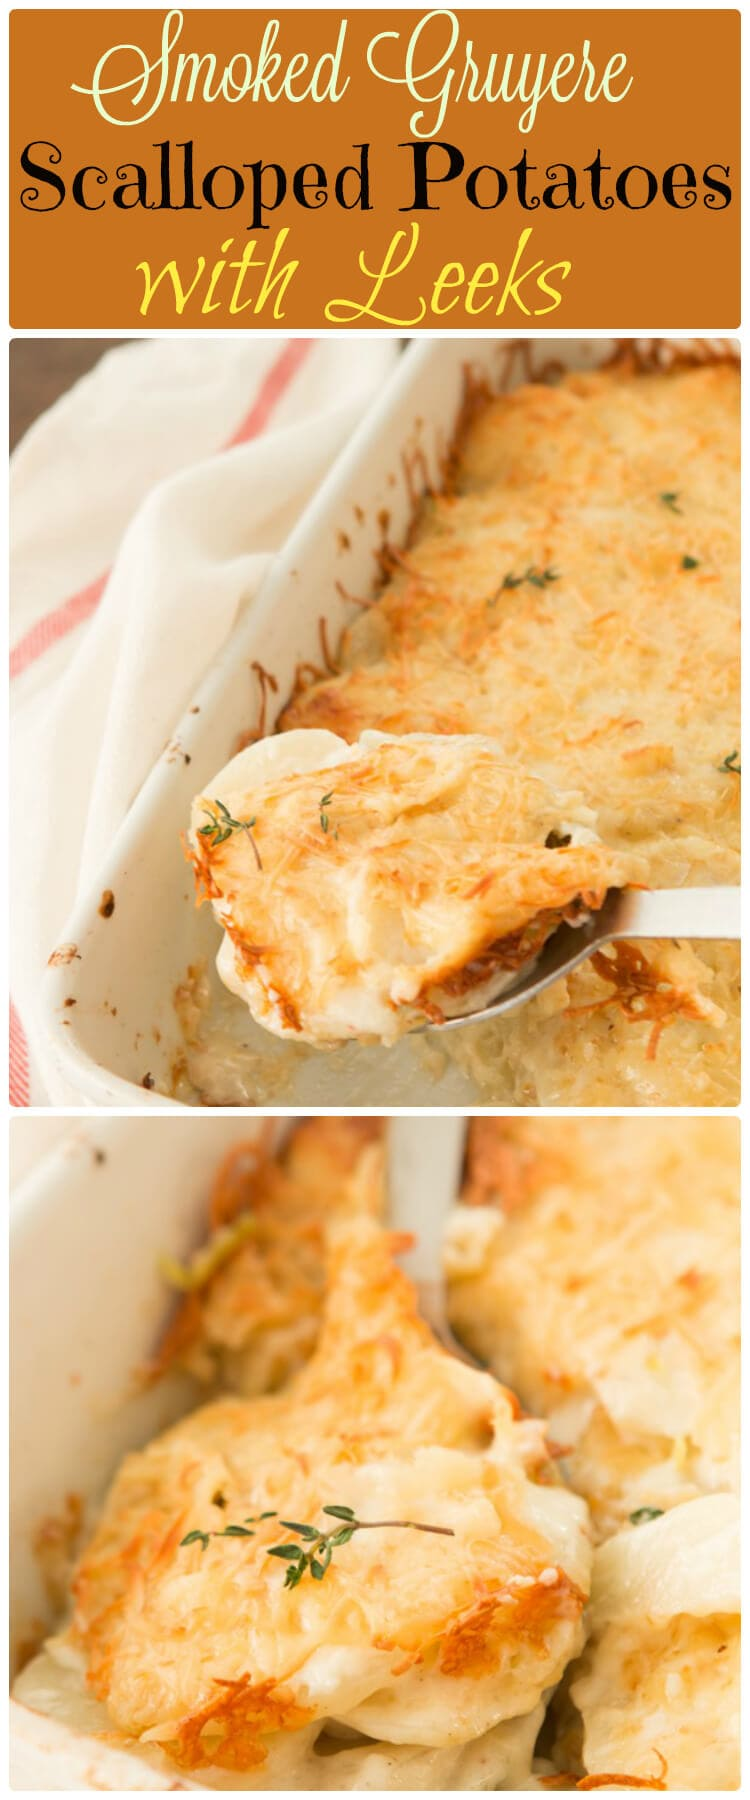 ... these smoked gruyere scalloped potatoes with leeks! ohsweetbasil.com